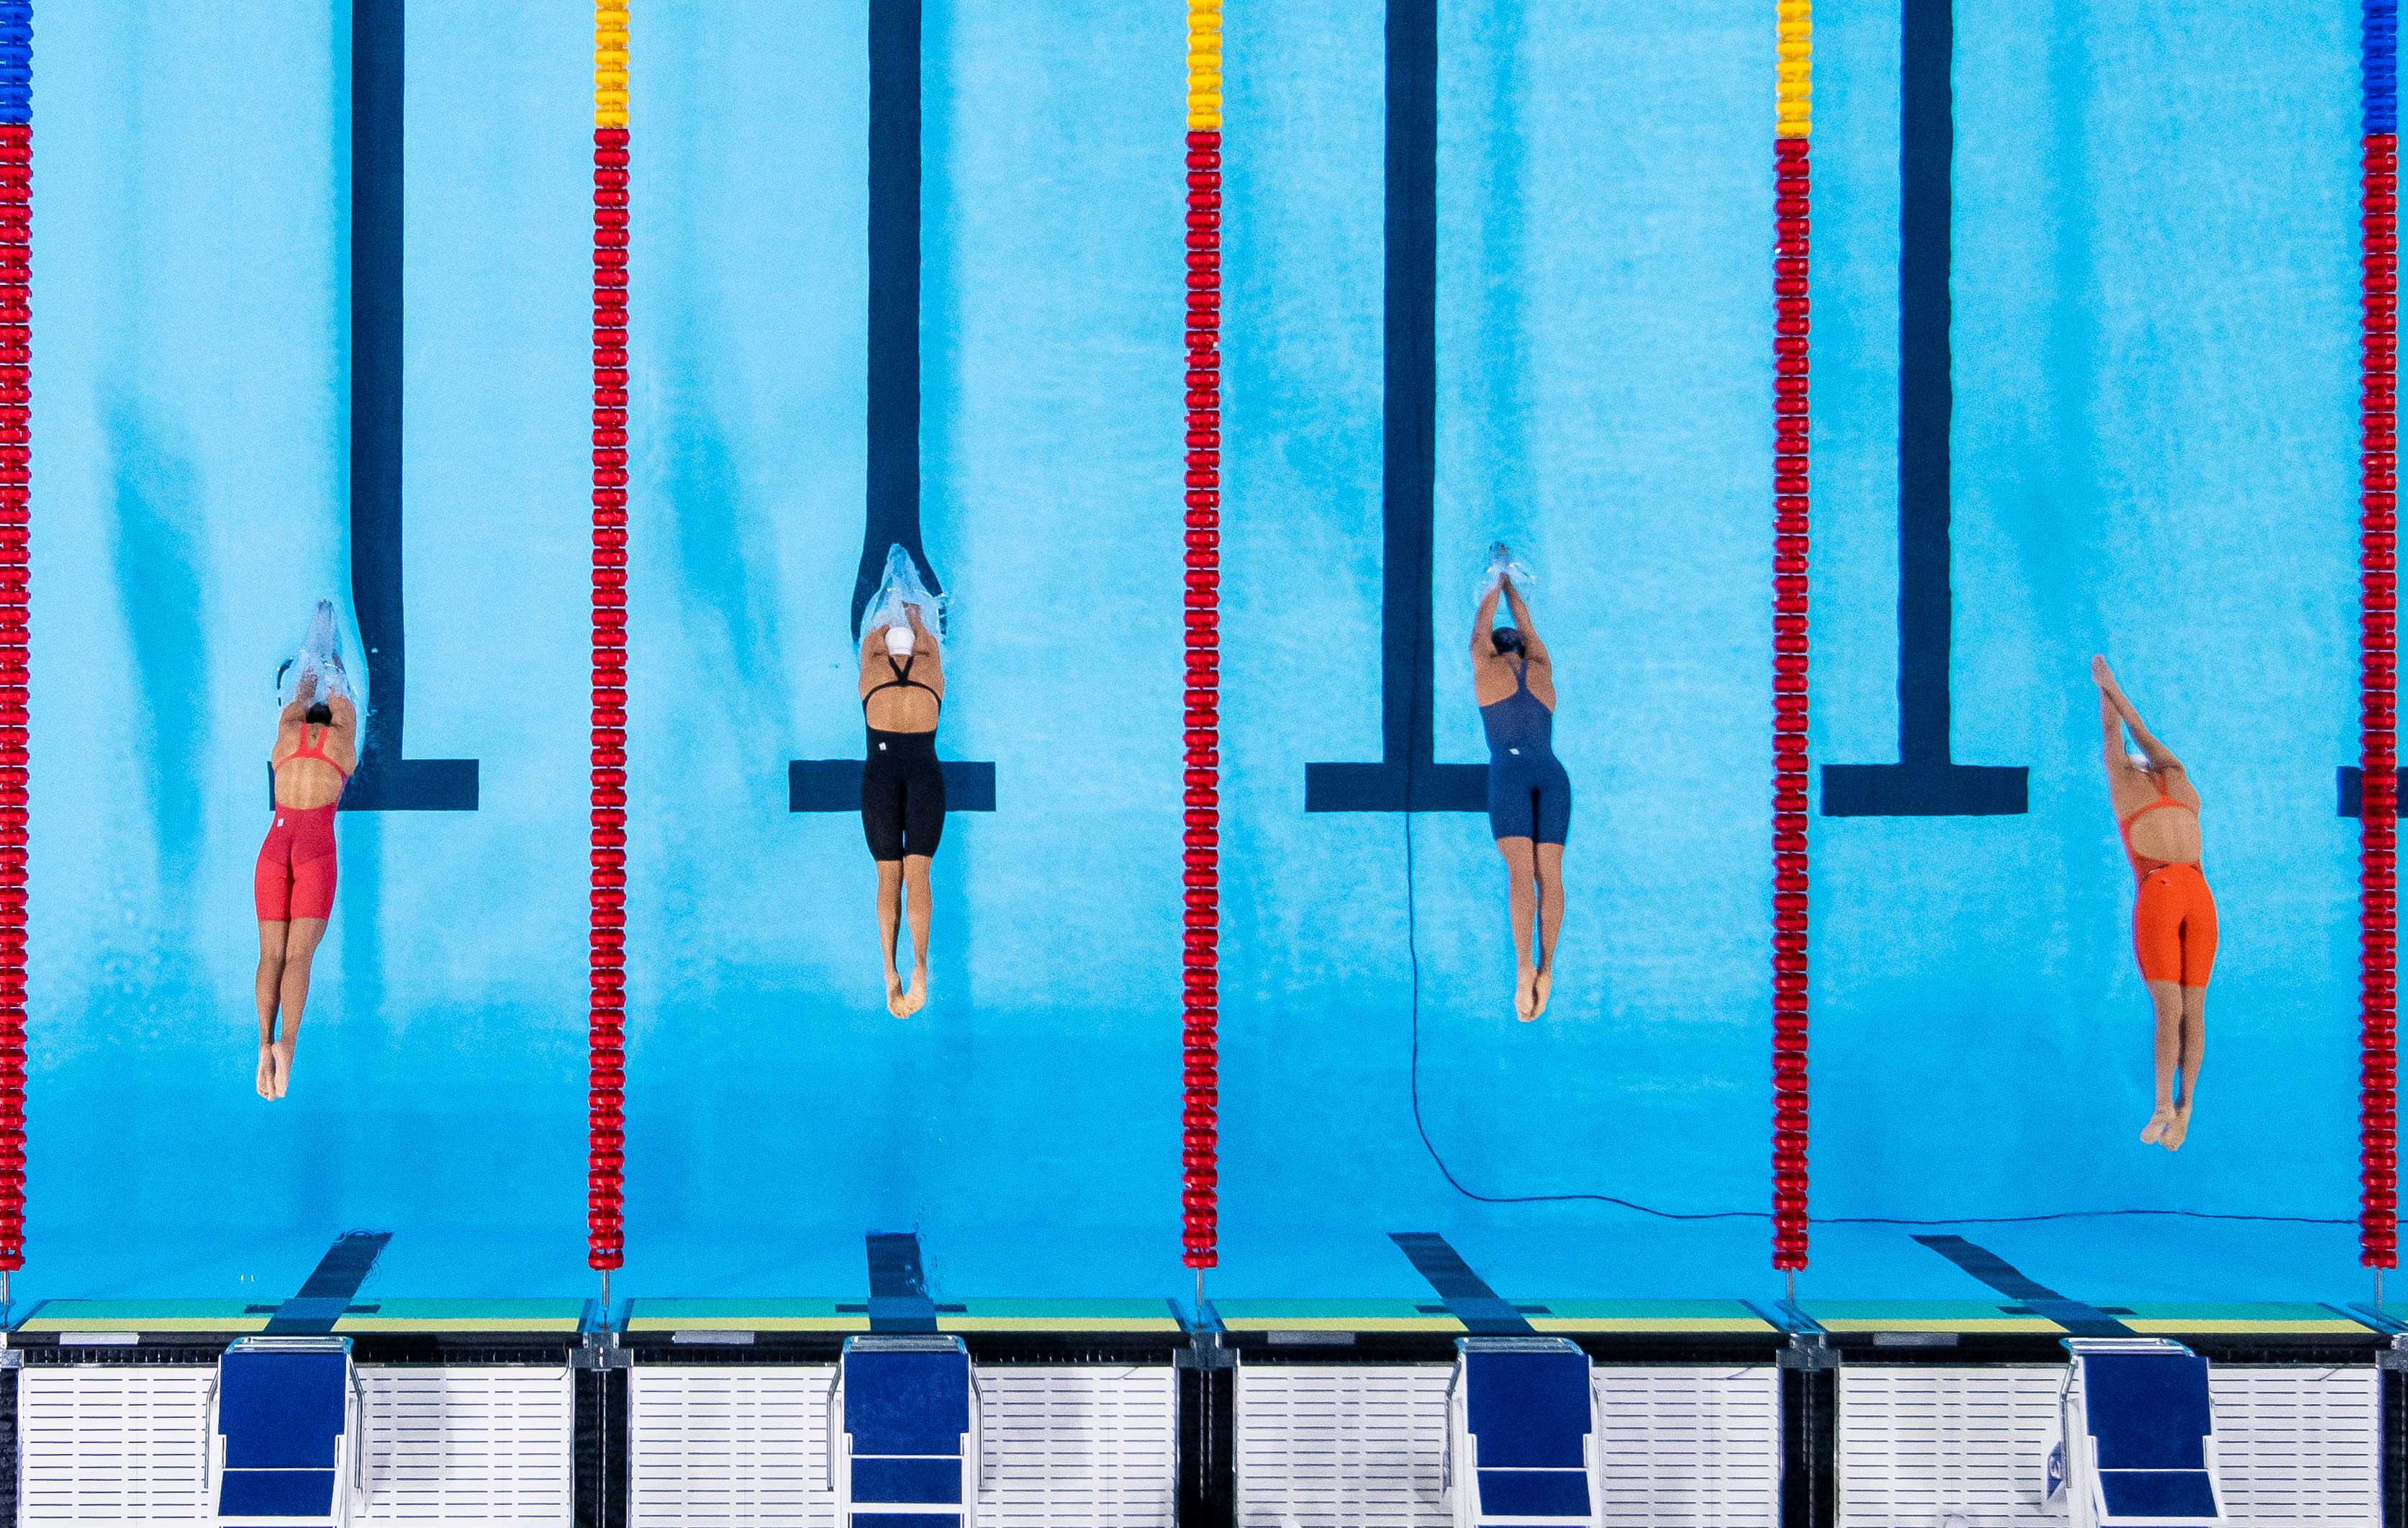 4 swinning athletes are jumping in the pool (top view)